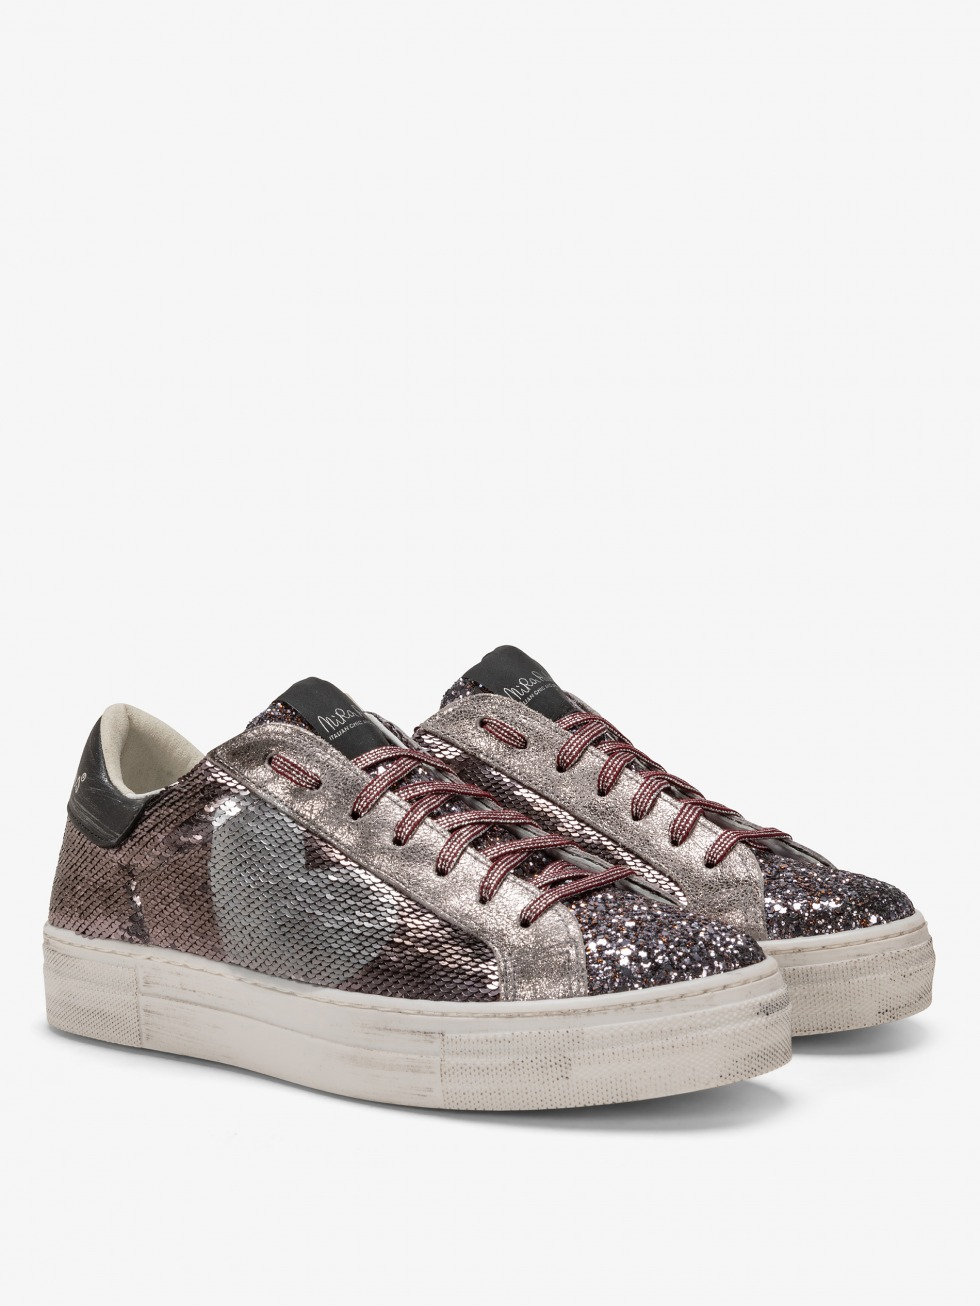 Martini Sparkle Sneakers - Grey Heart